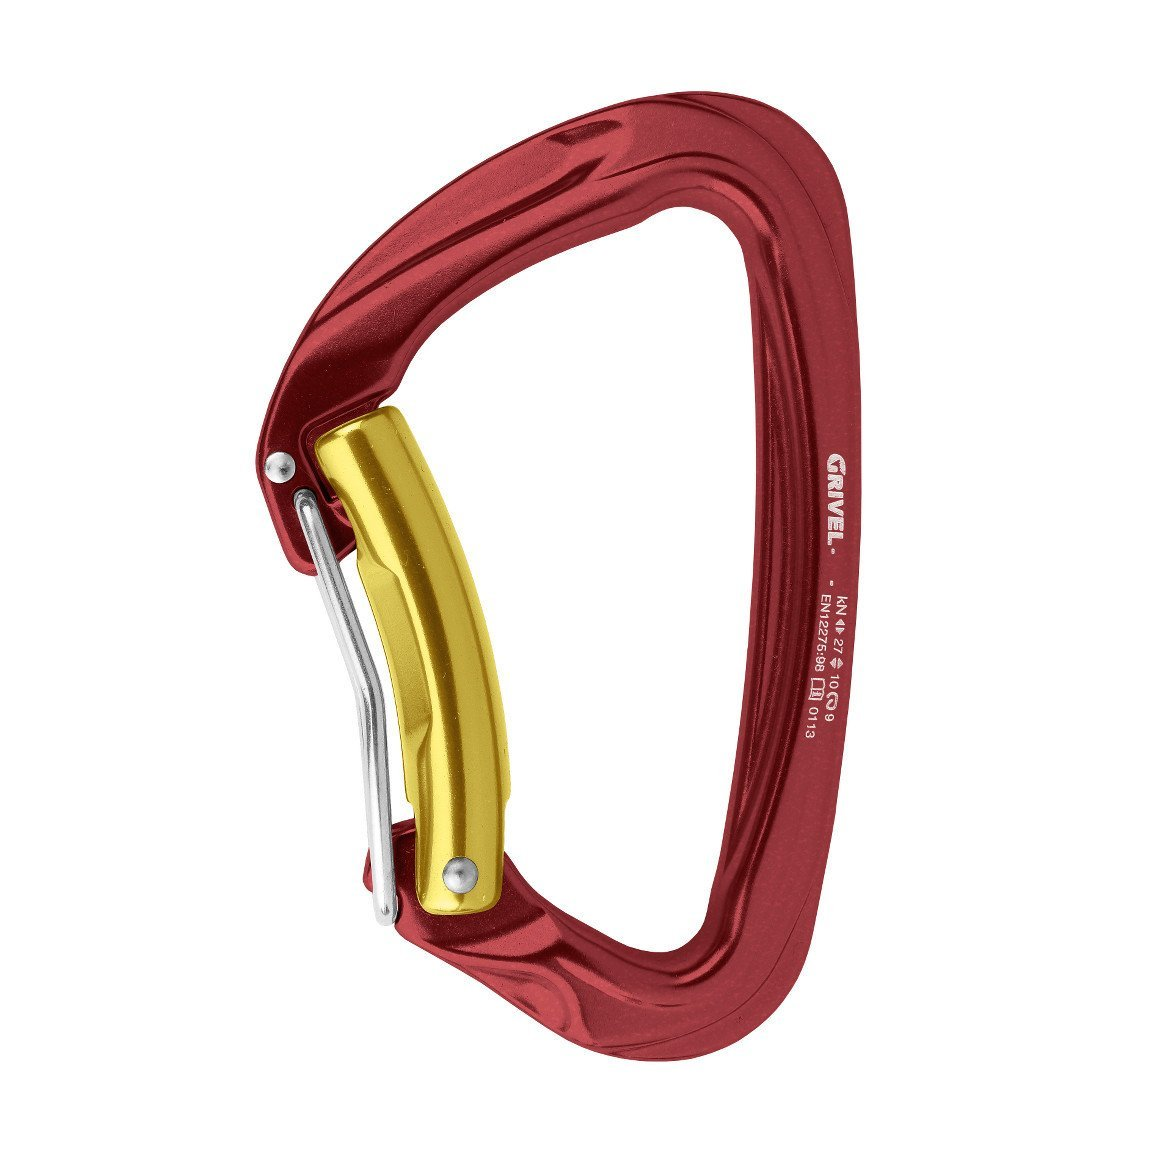 Grivel Sigma Twin Gate Carabiner, in maroon red and gold colours